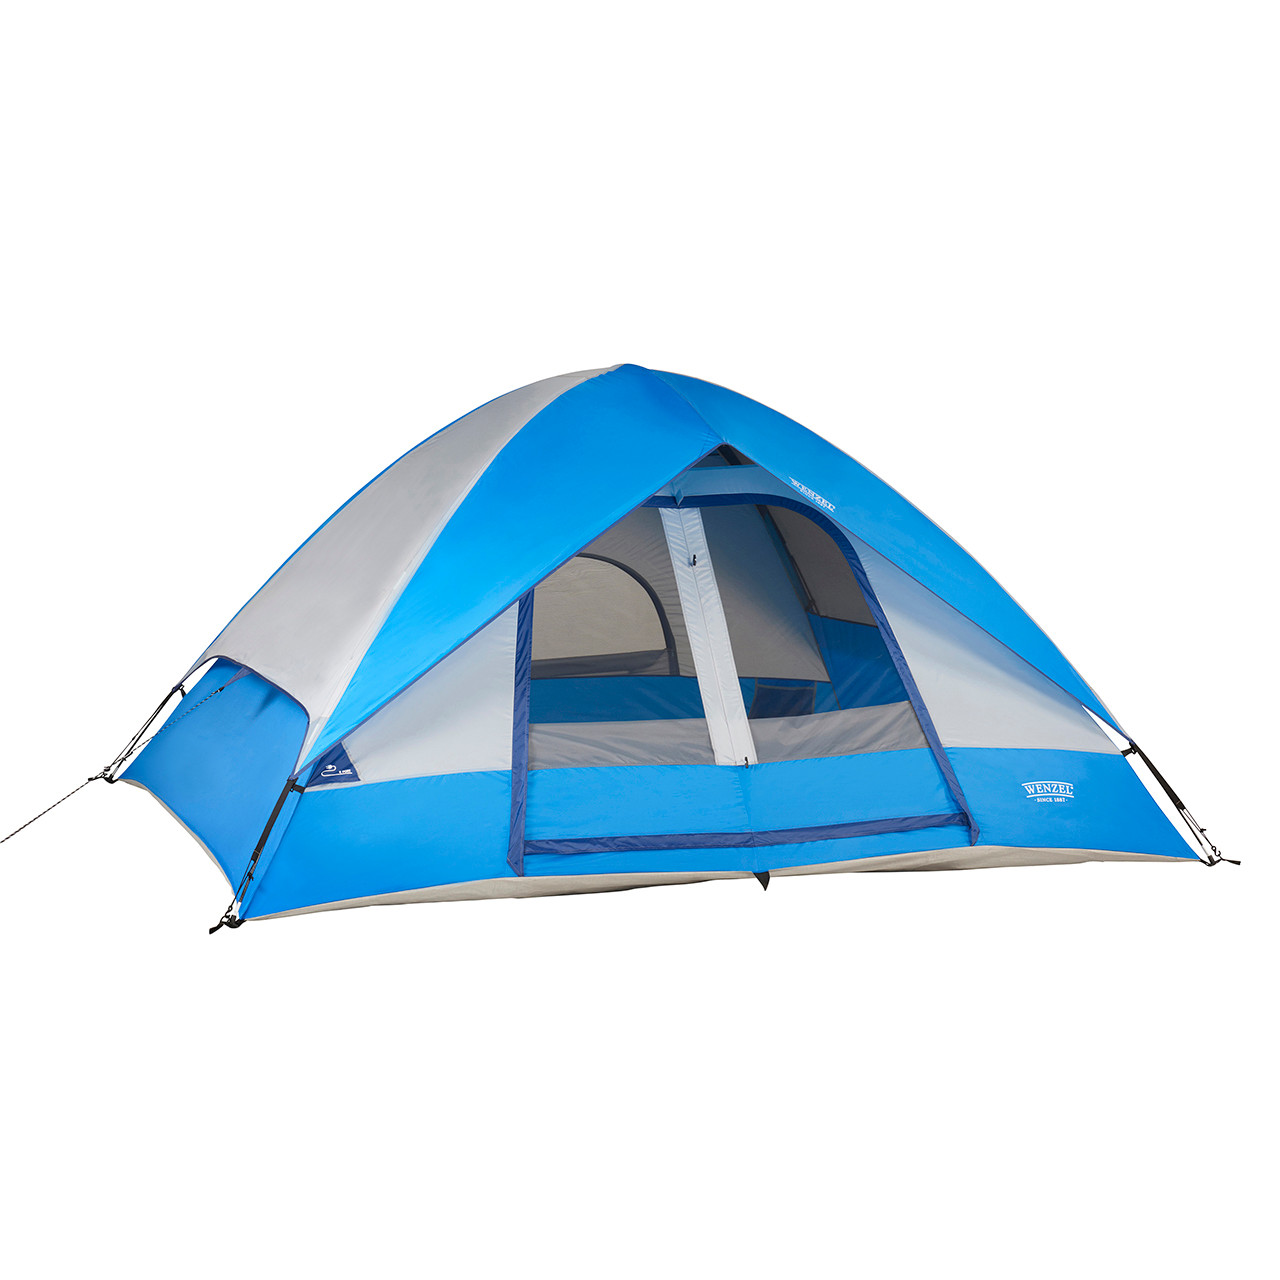 Wenzel Pine Ridge 5 tent blue and tan, setup with the rain fly completely on and the main screen door rolled open